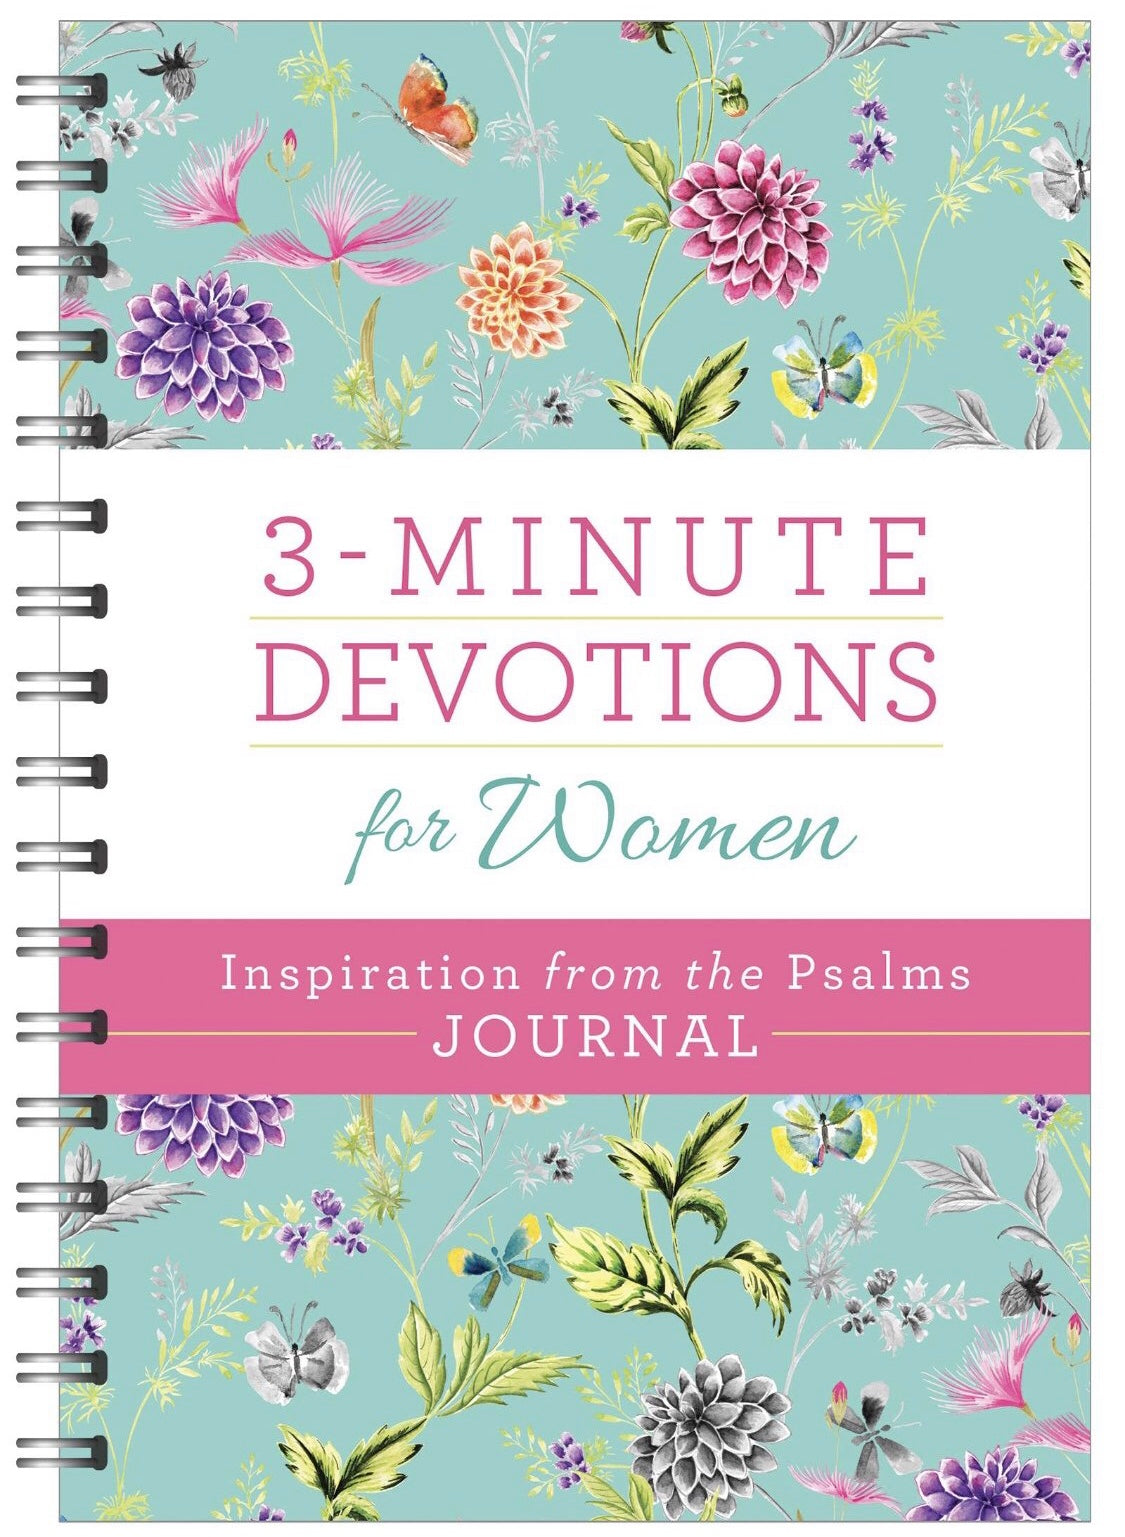 3 - Minute Devotions for Women